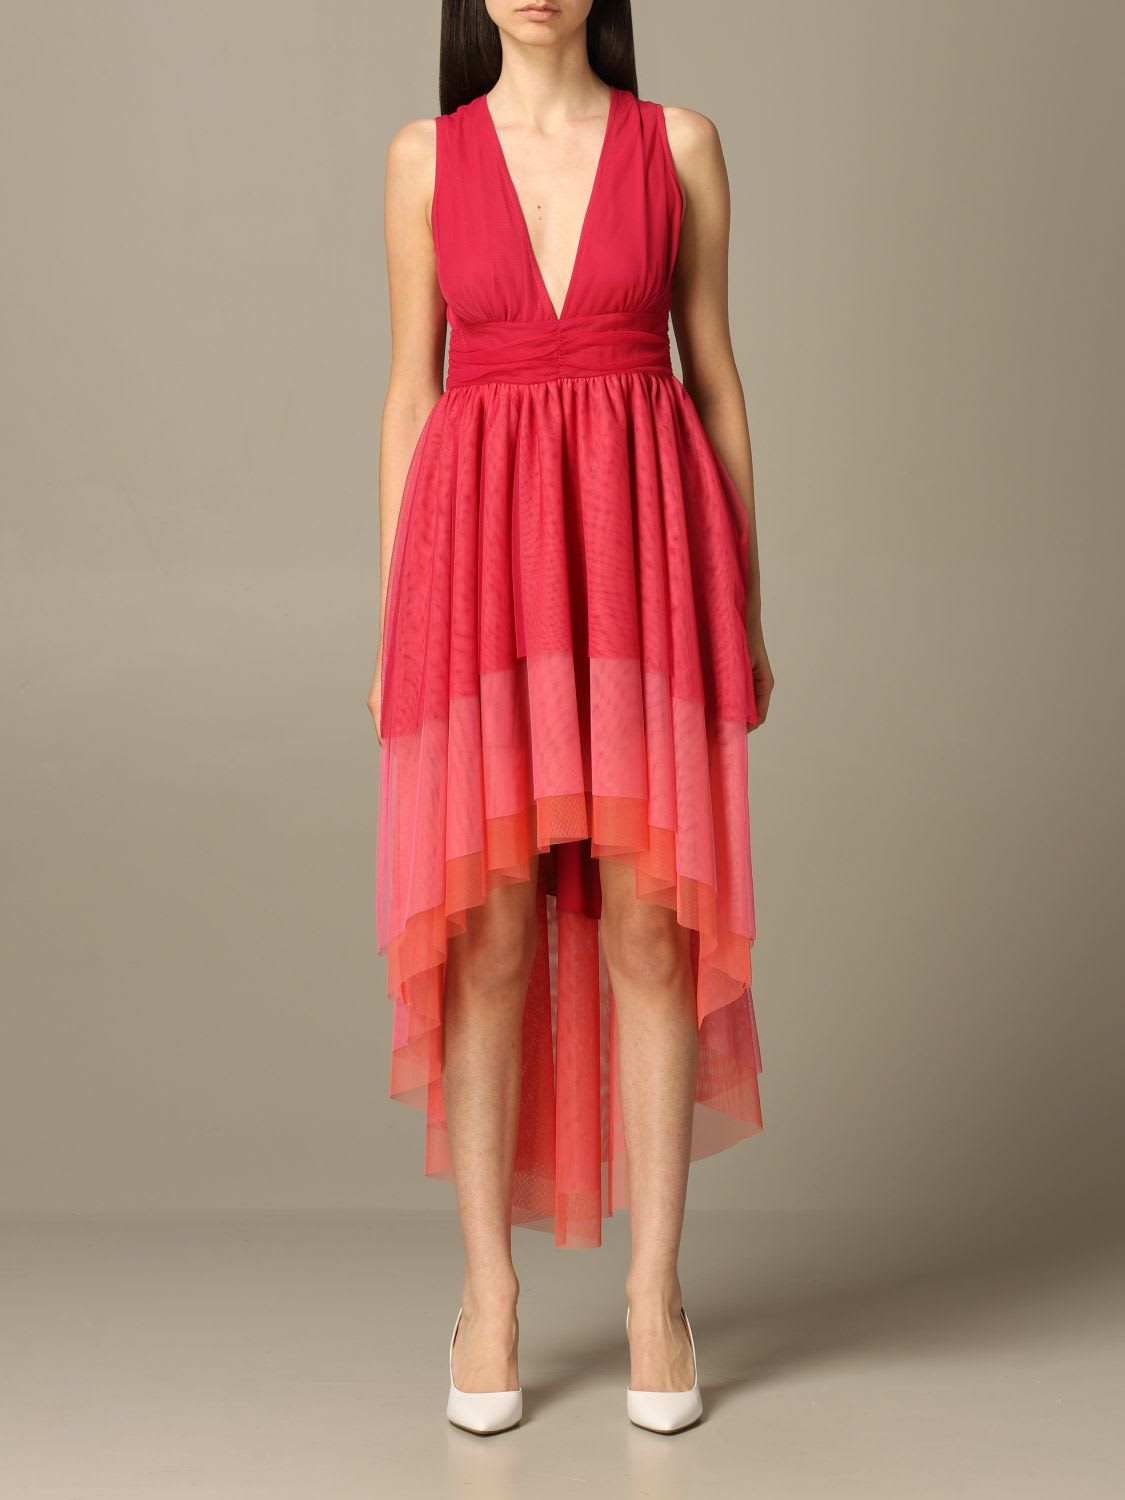 Be Blumarine Dress Be Blumarine V-shaped Dress In Flounced Tulle